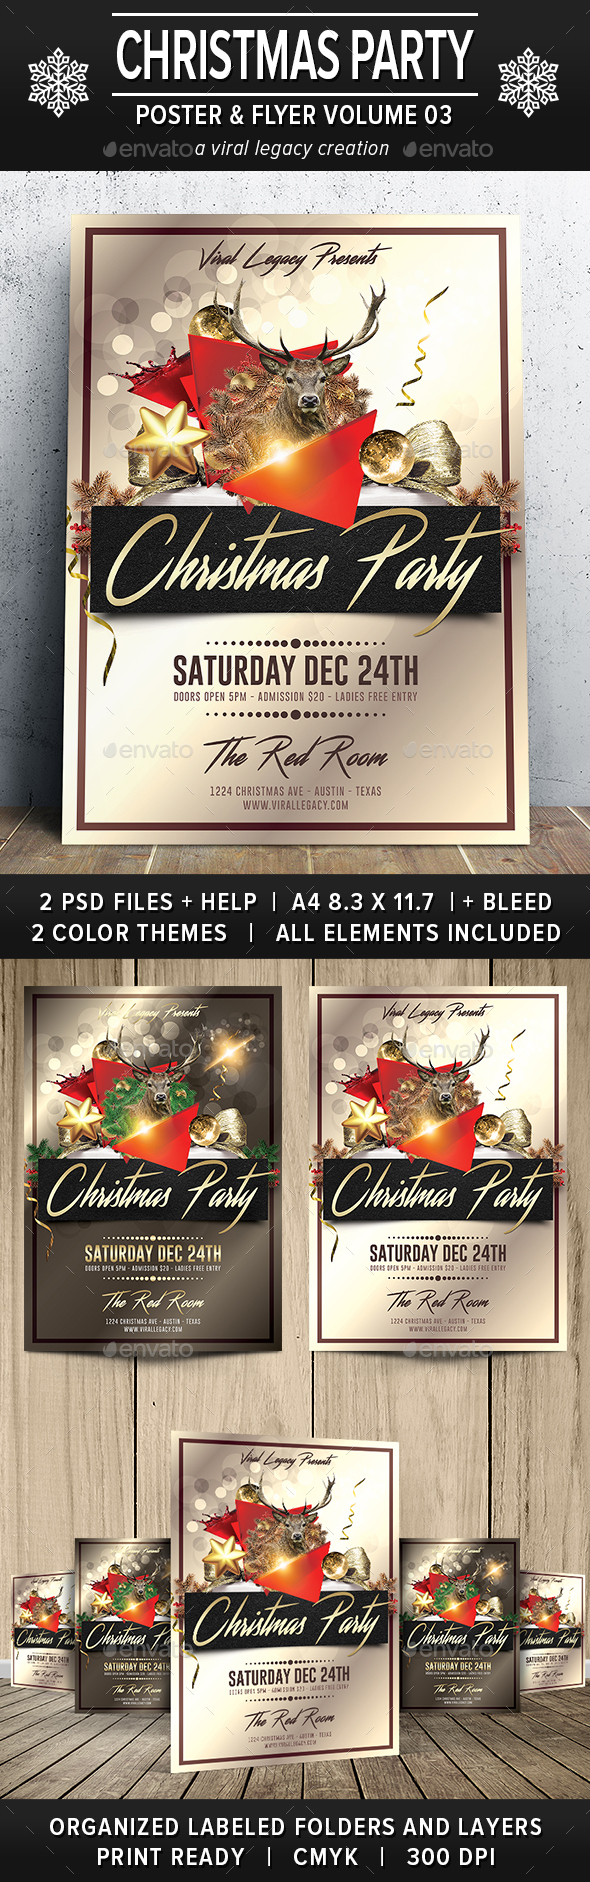 Christmas Party Poster / Flyer V03